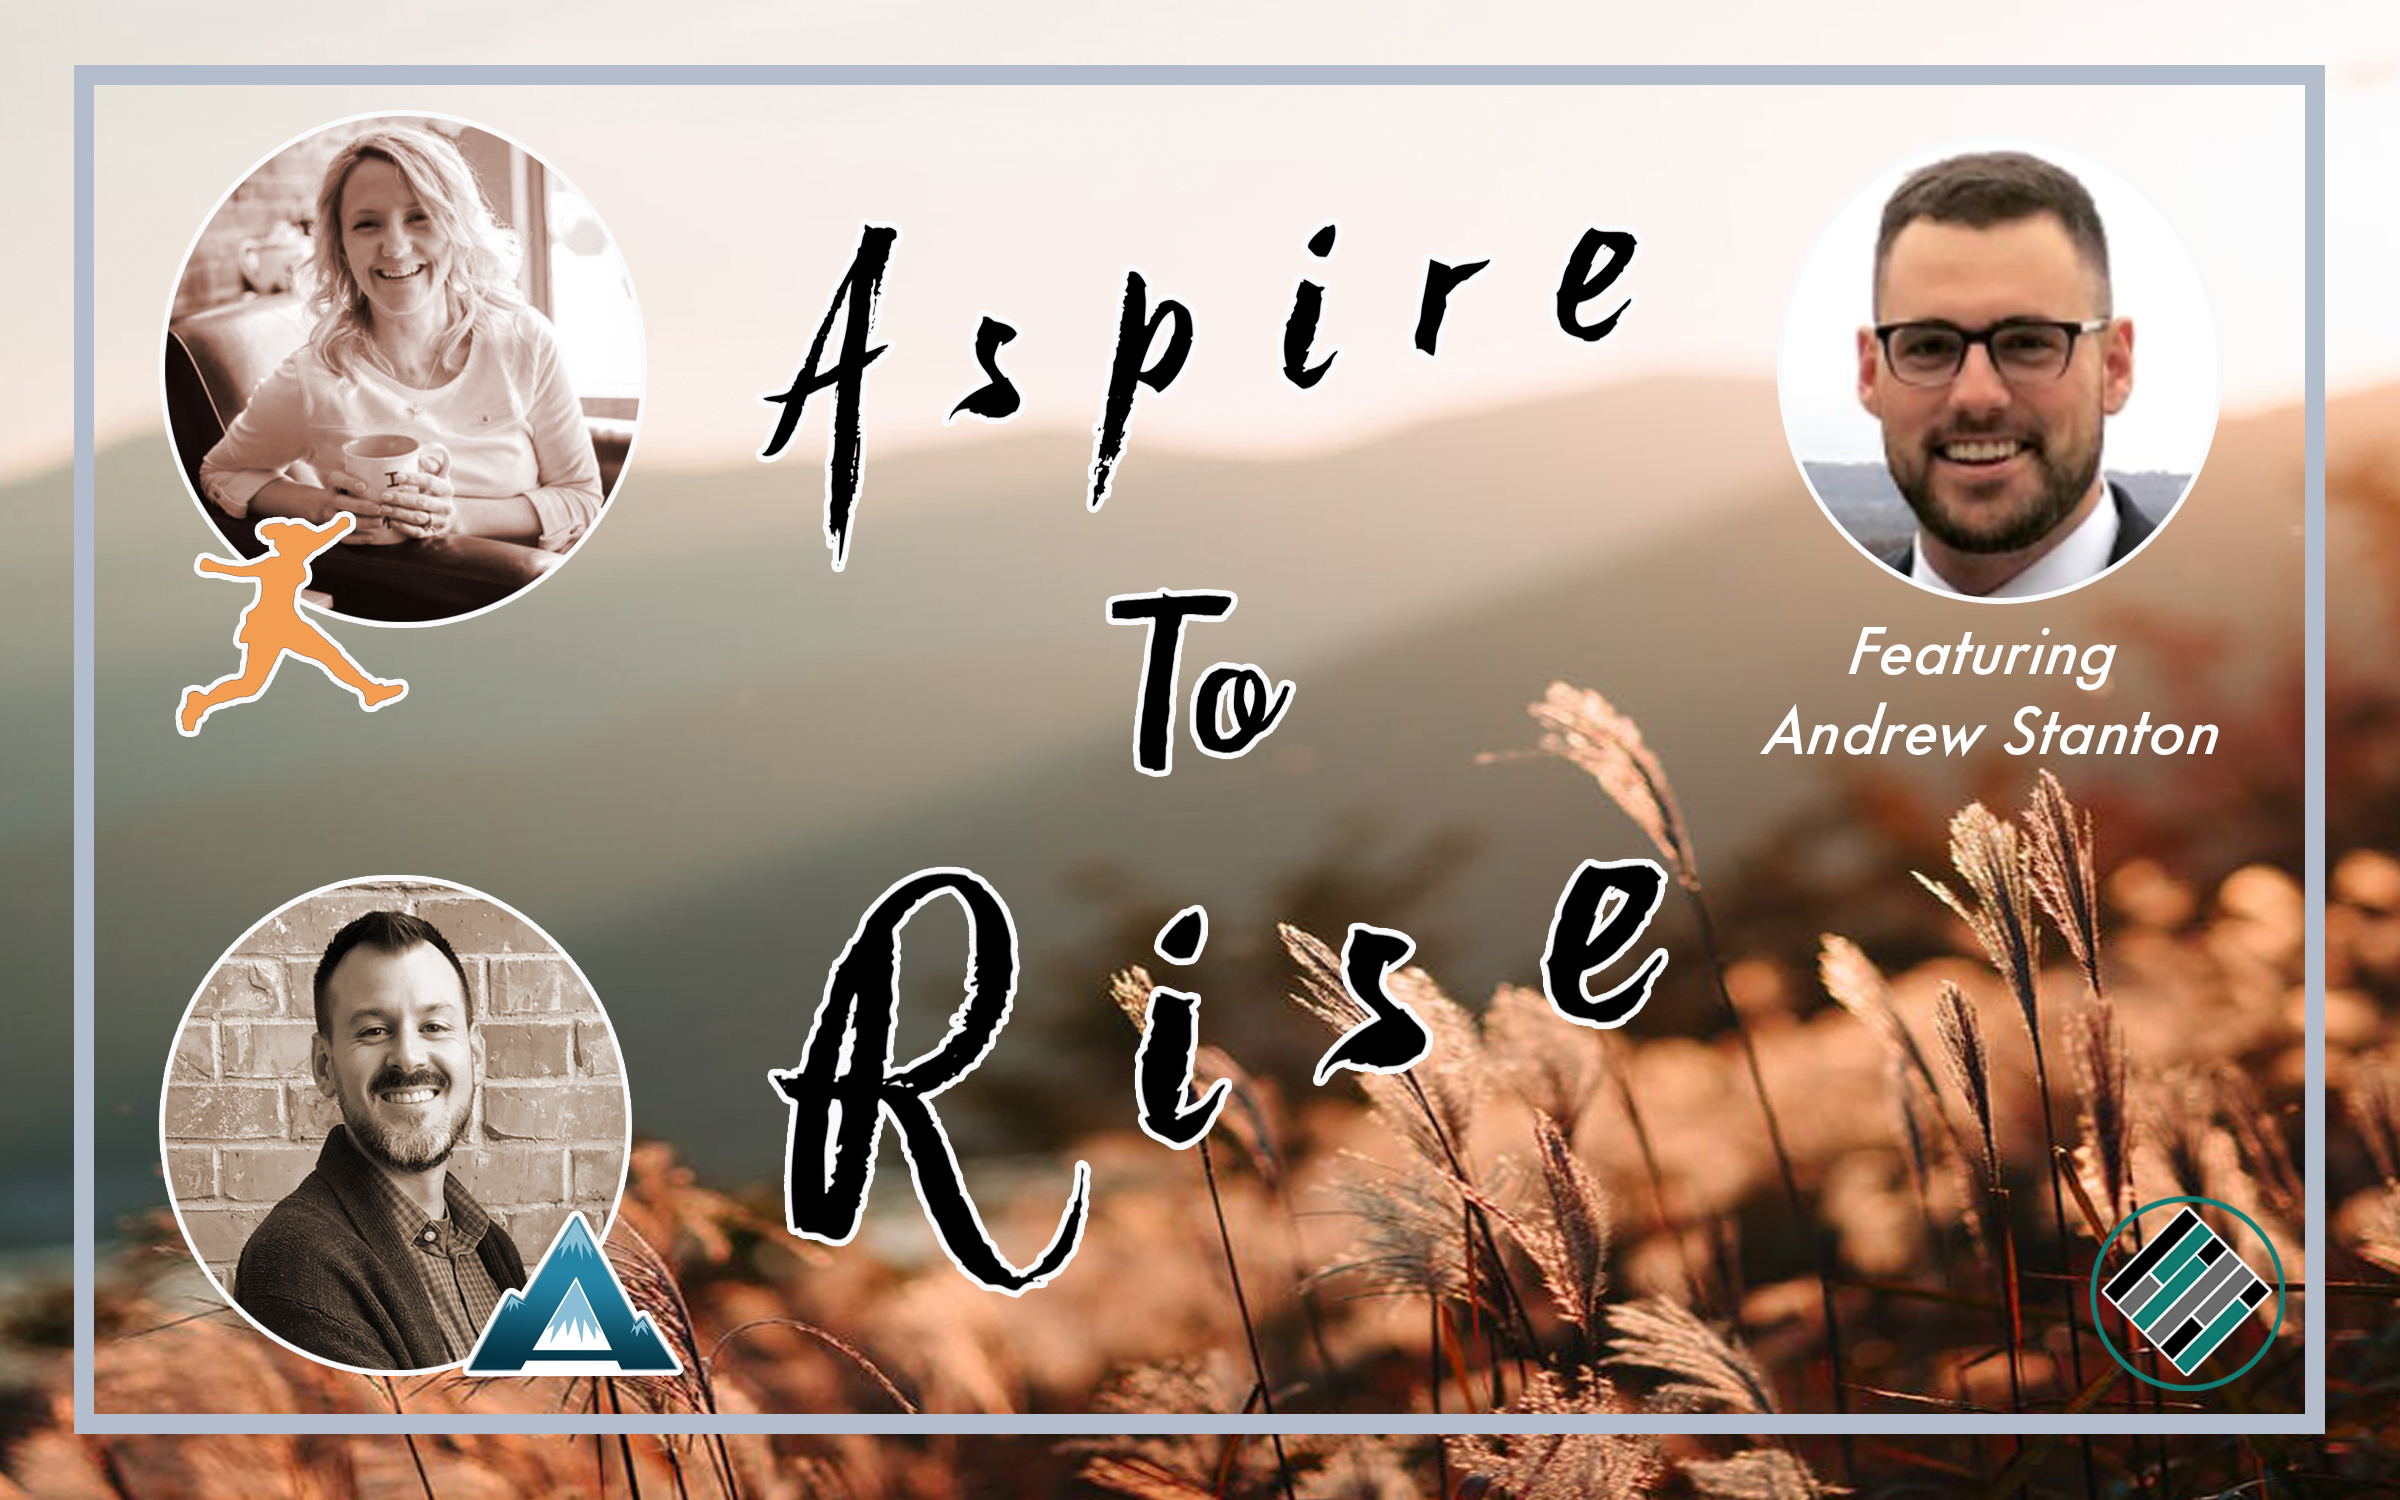 Joshua Stamper, Sarah Johnson, Andrew Stanton, #AspireLead, Aspire: The Leadership Development Podcast, Aspire to RISE